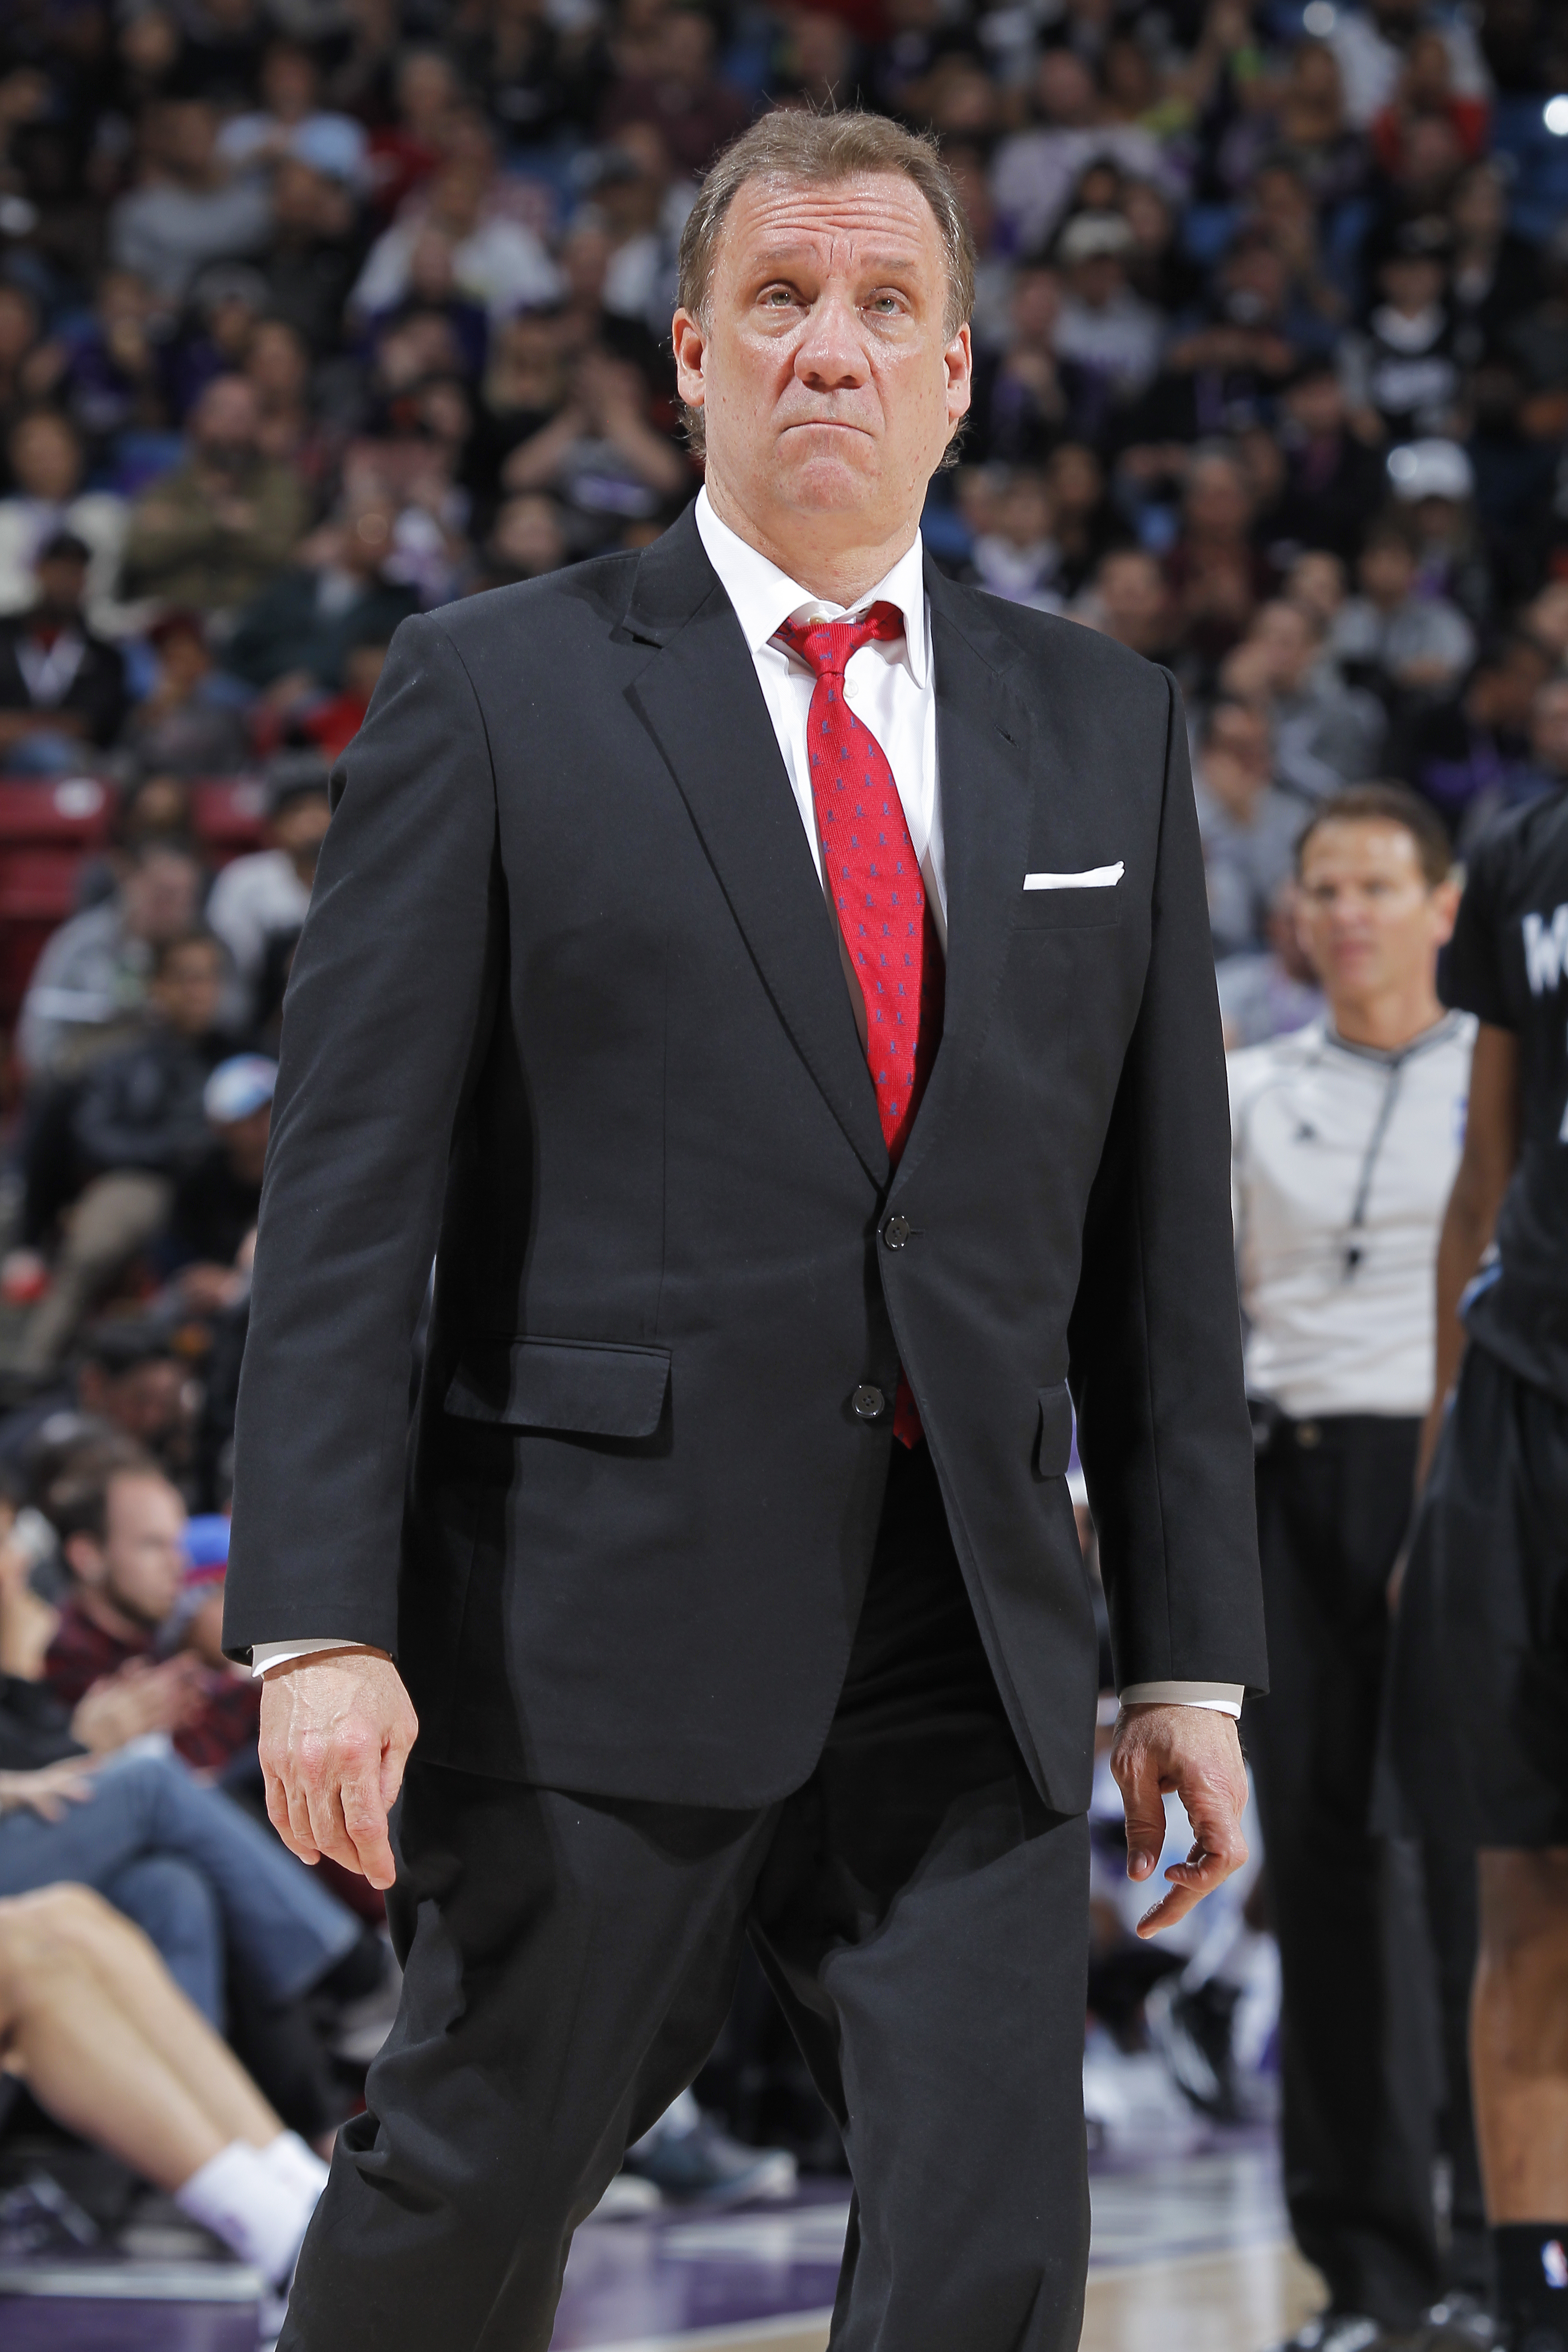 SACRAMENTO, CA - APRIL 7: Head coach Flip Saunders of the Minnesota Timberwolves coaches against the Sacramento Kings on April 7, 2015 at Sleep Train Arena in Sacramento, California. (Photo by Rocky Widner/NBAE via Getty Images)